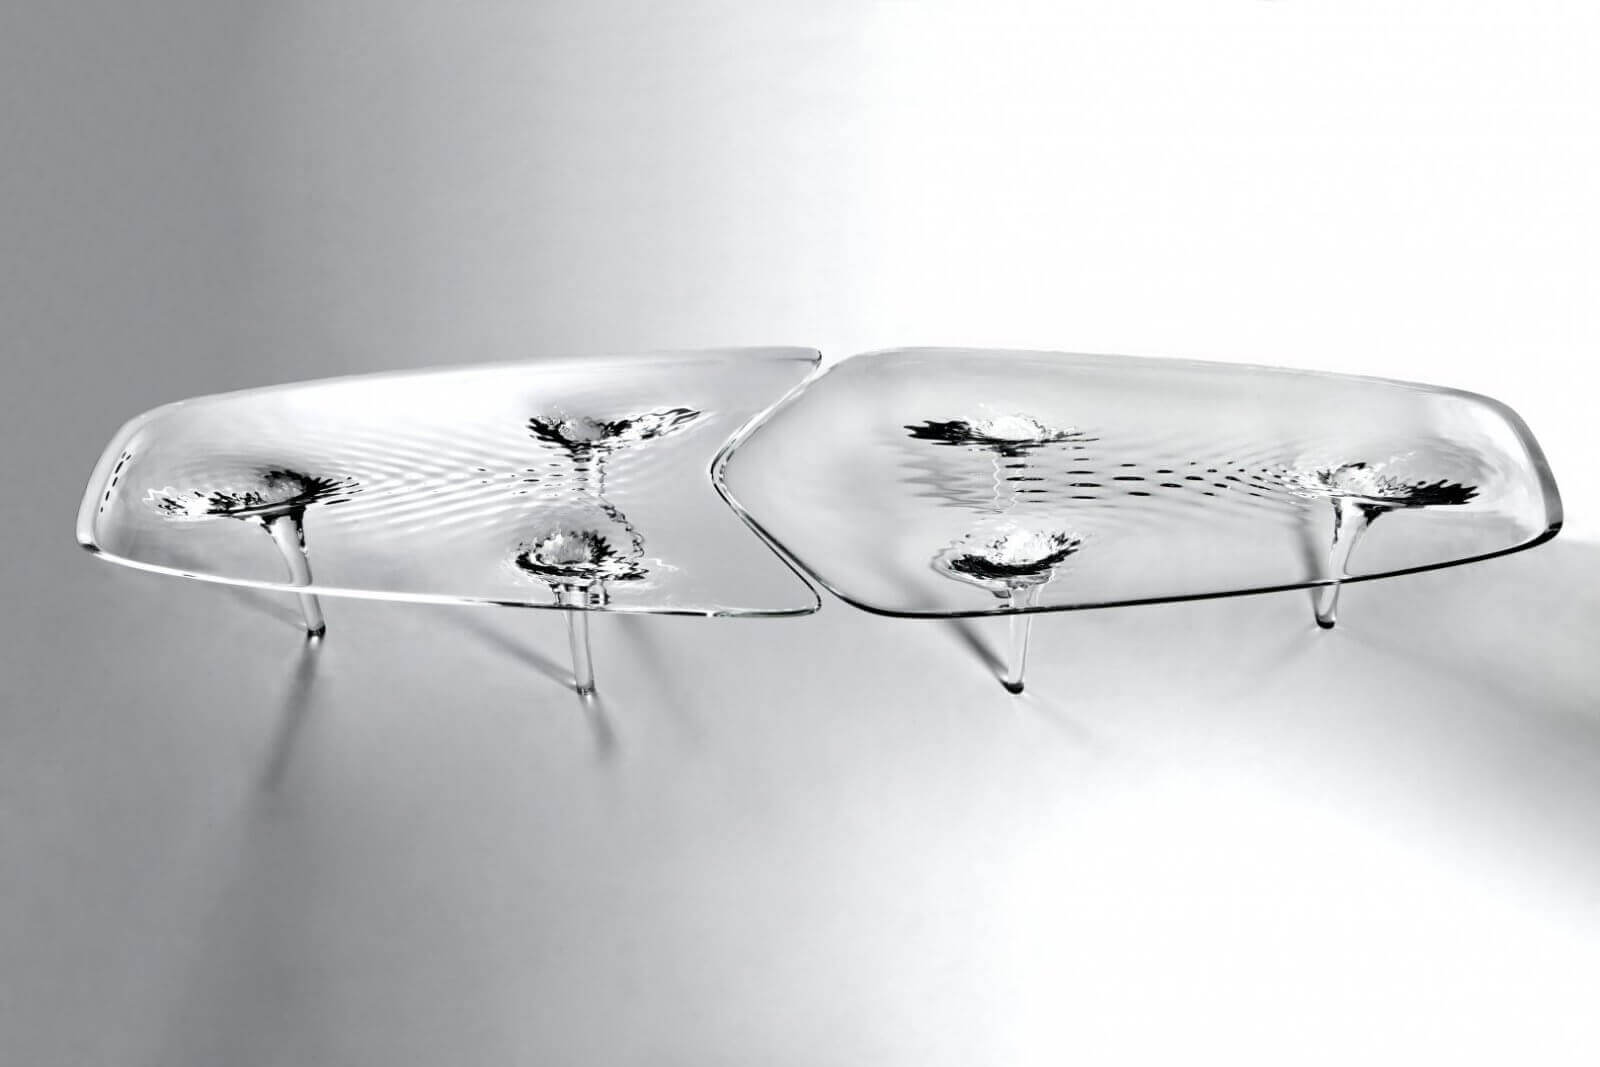 The Liquid Glacial table by Zaha Hadid is created with Plexiglas.